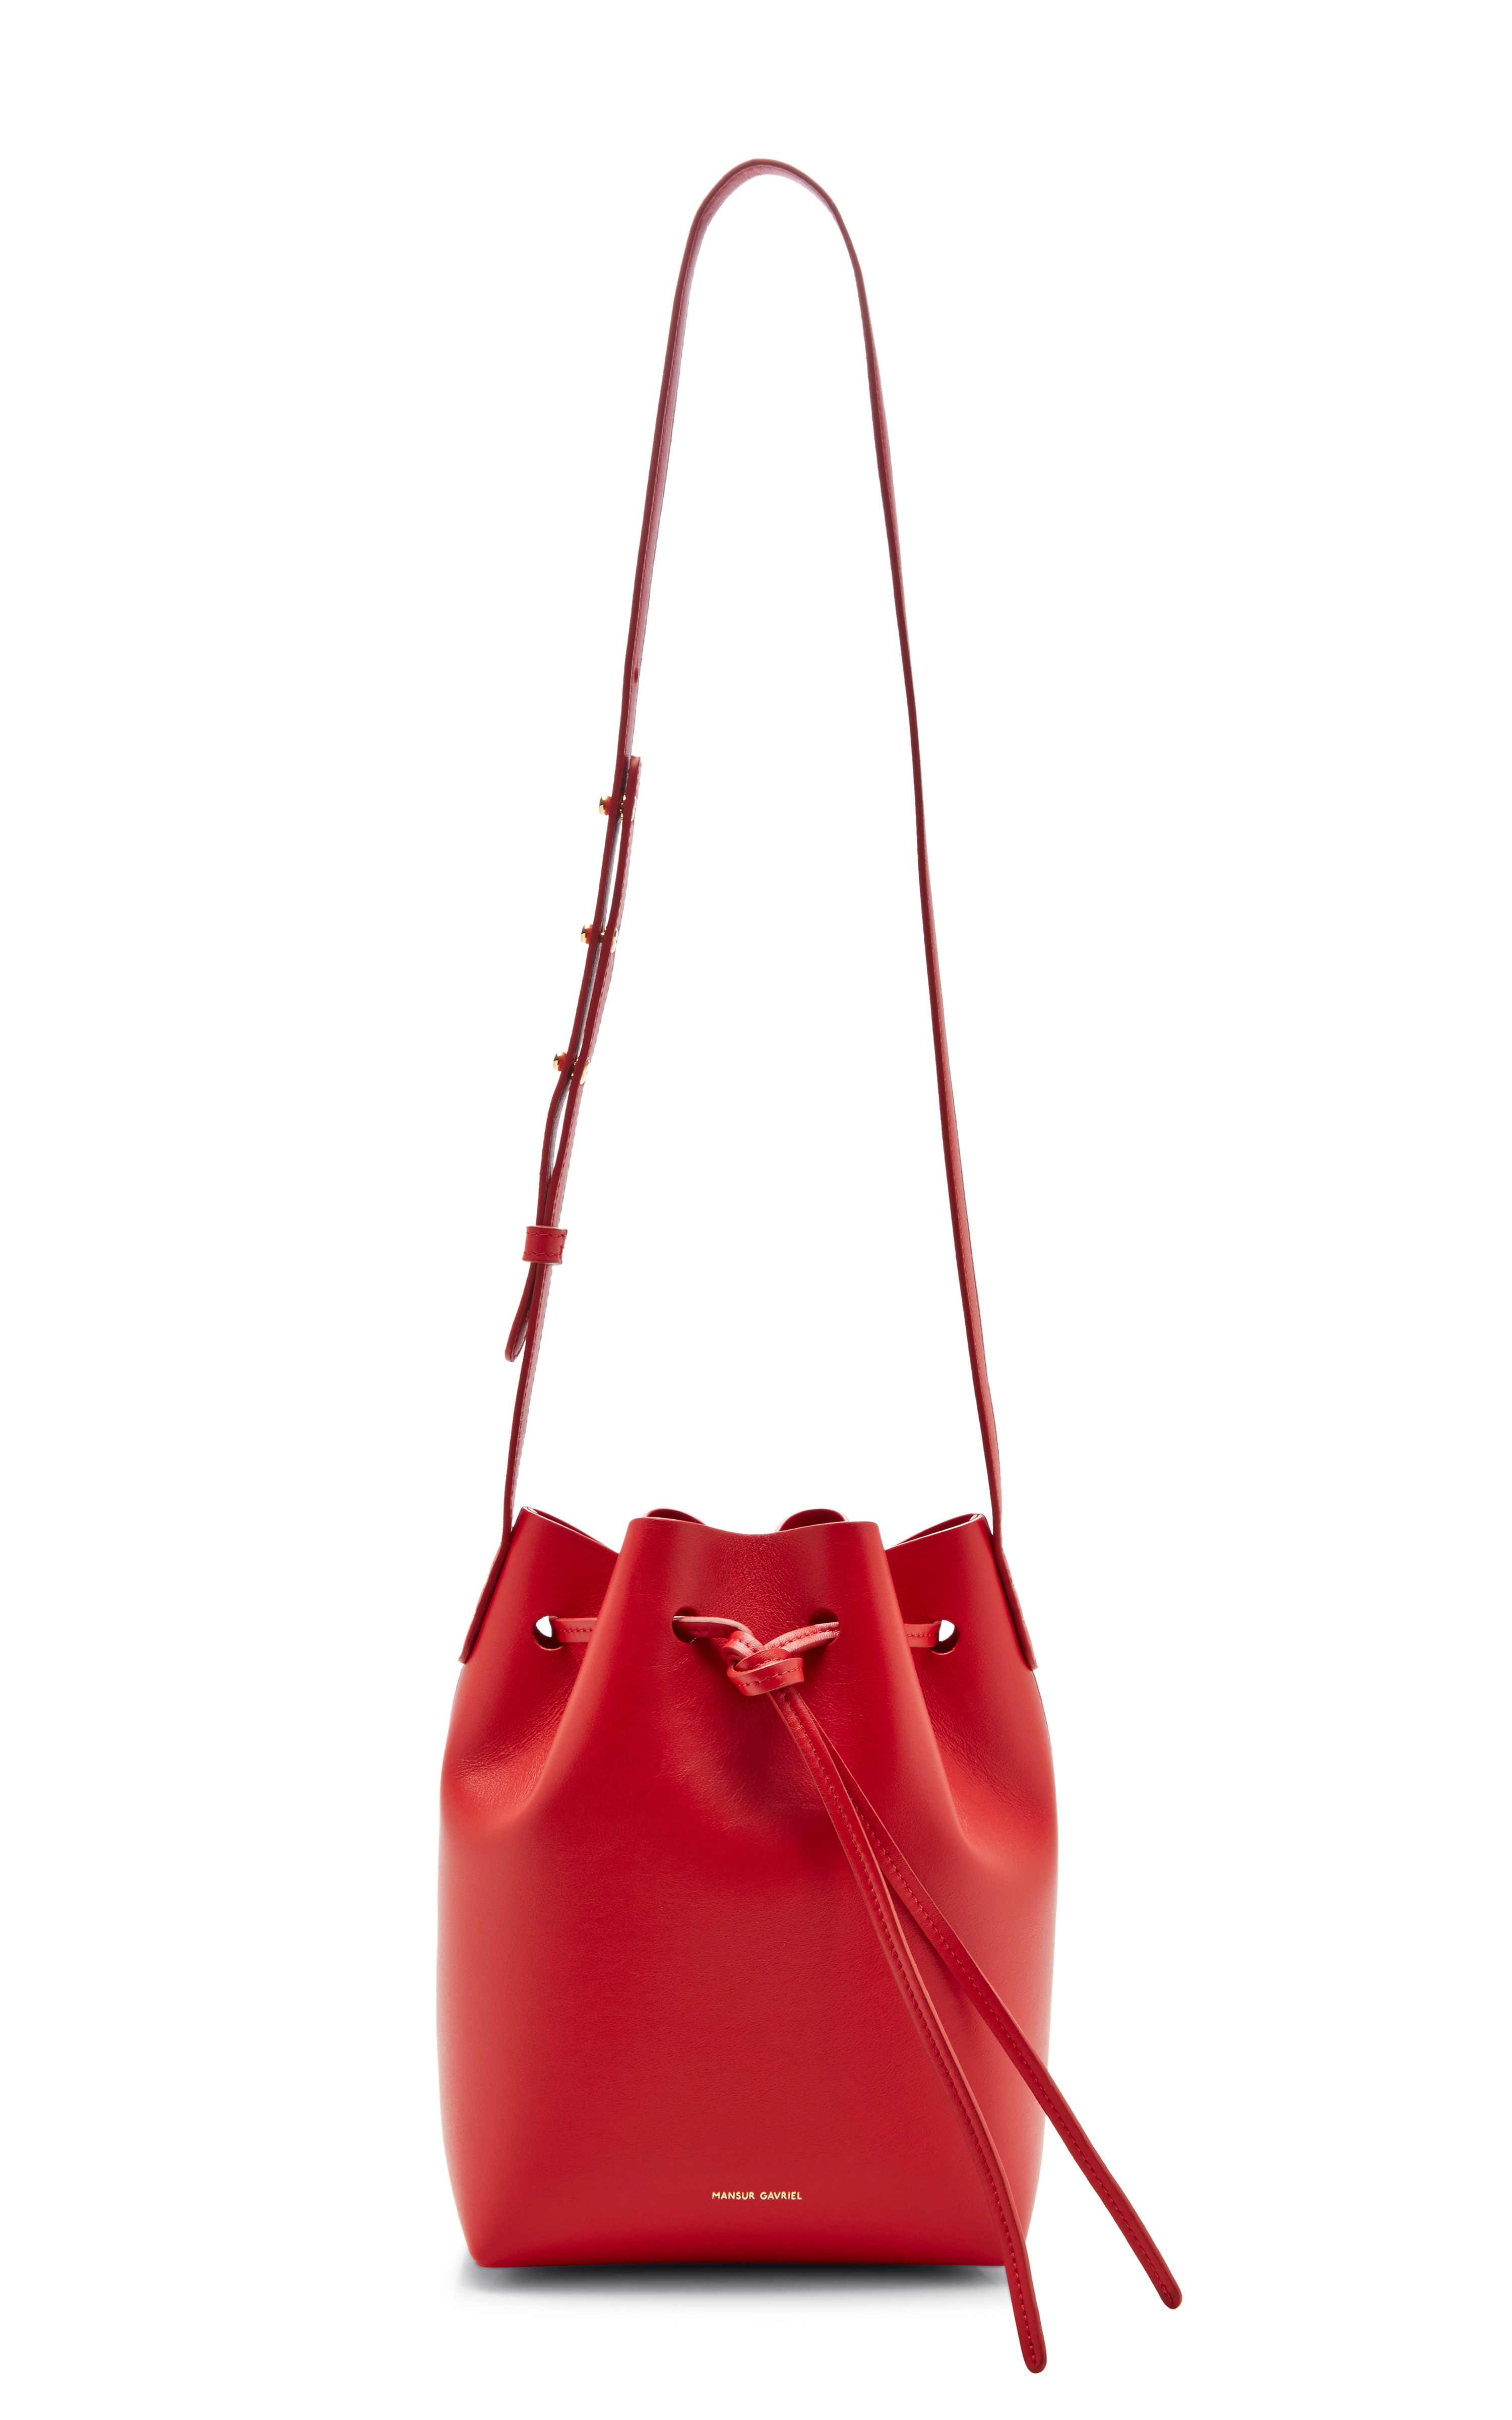 Lyst - Mansur Gavriel Mini Leather Bucket Bag in Red in Red